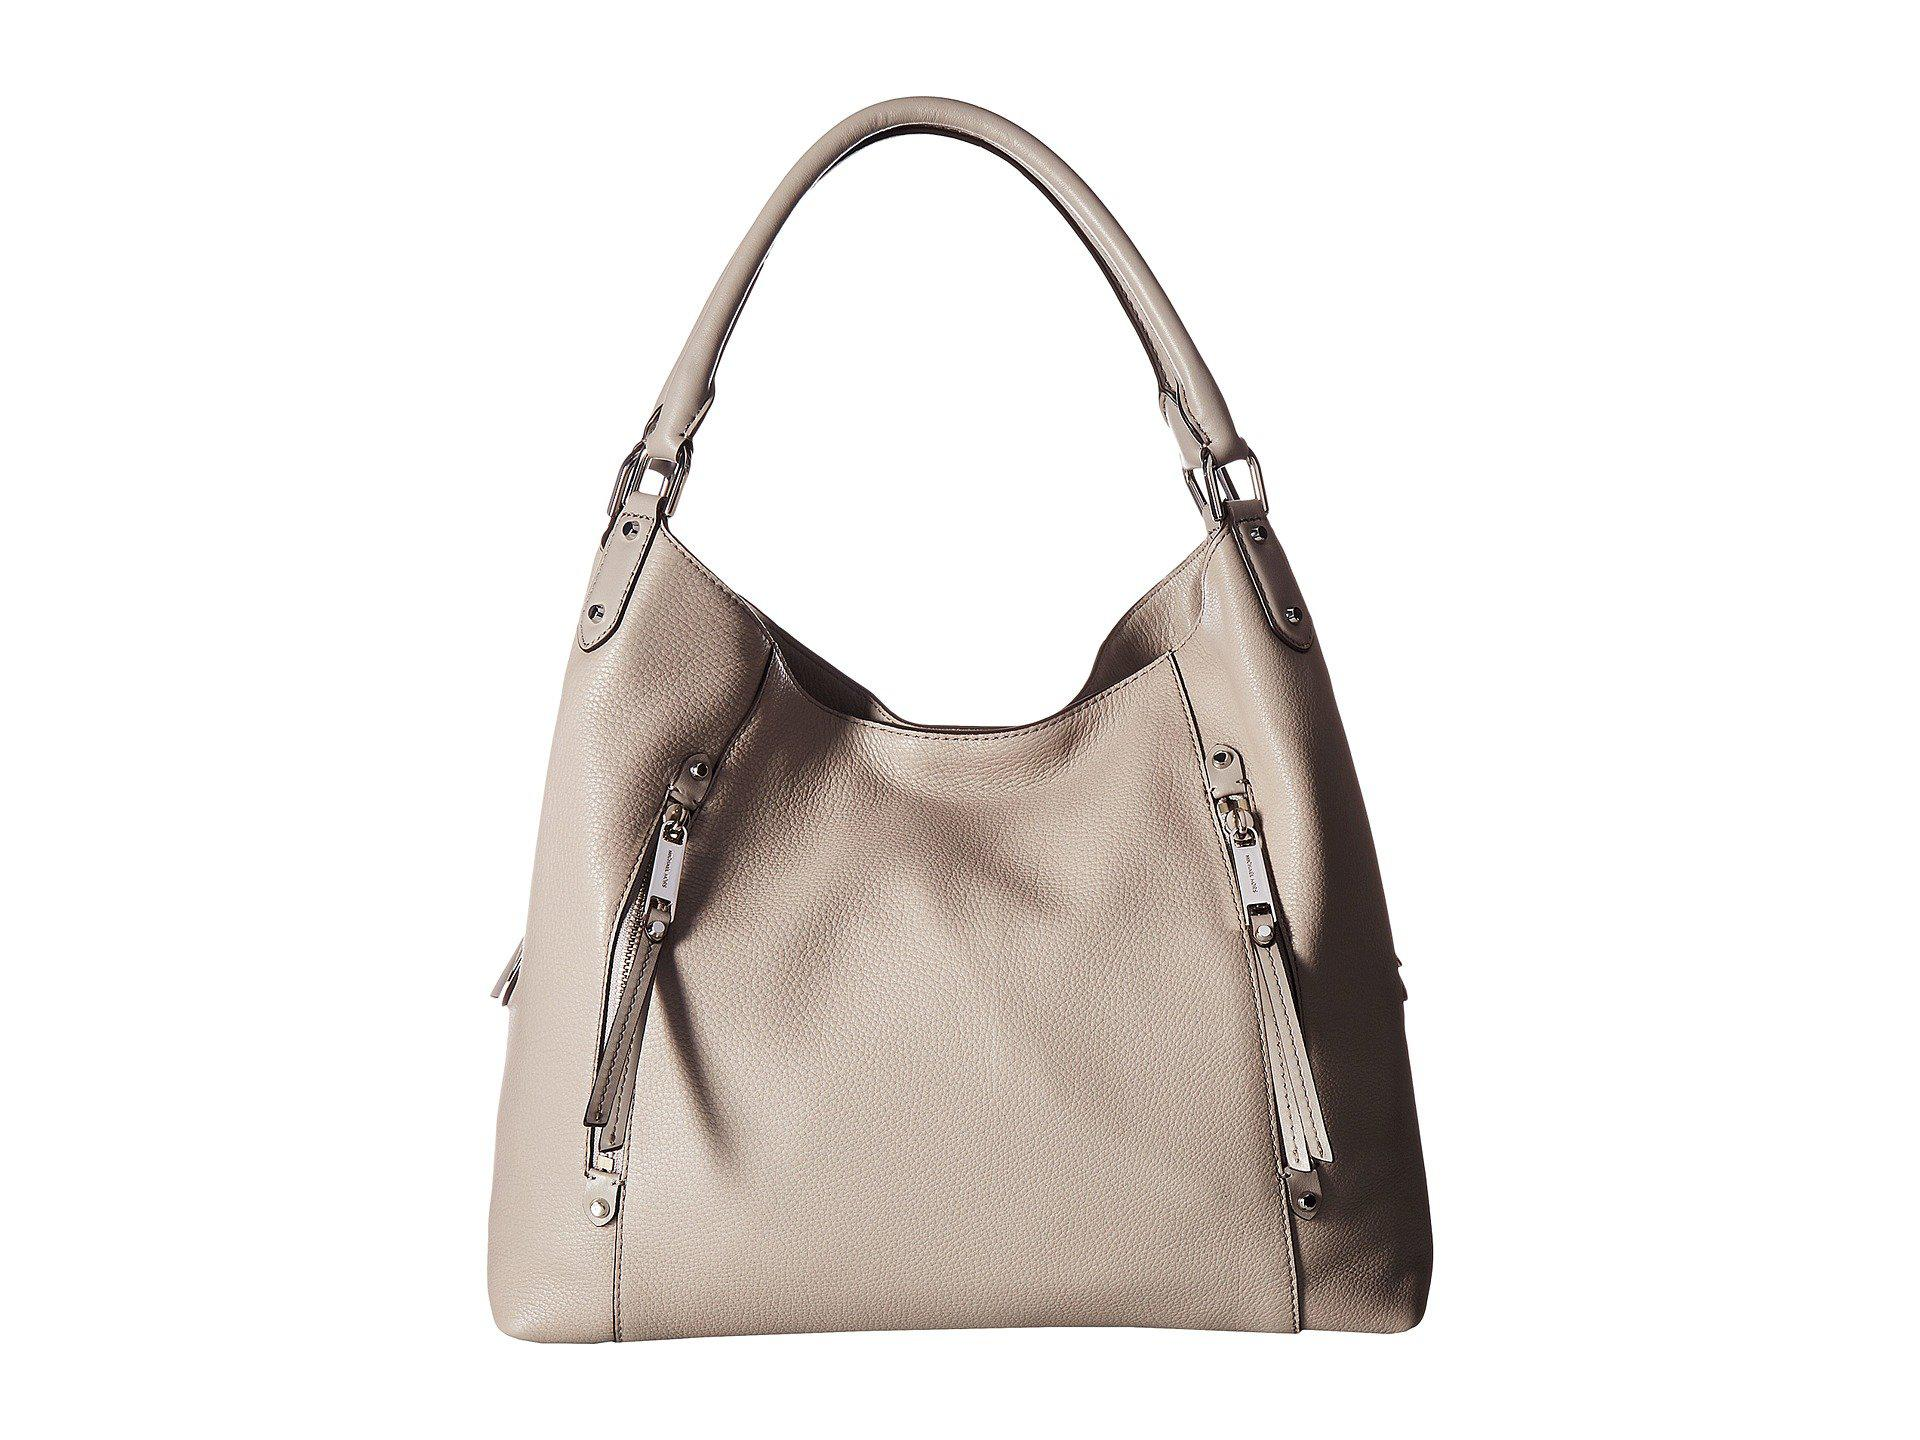 83f8a46f7adec9 MICHAEL Michael Kors Evie Large Shoulder Tote in Gray - Lyst